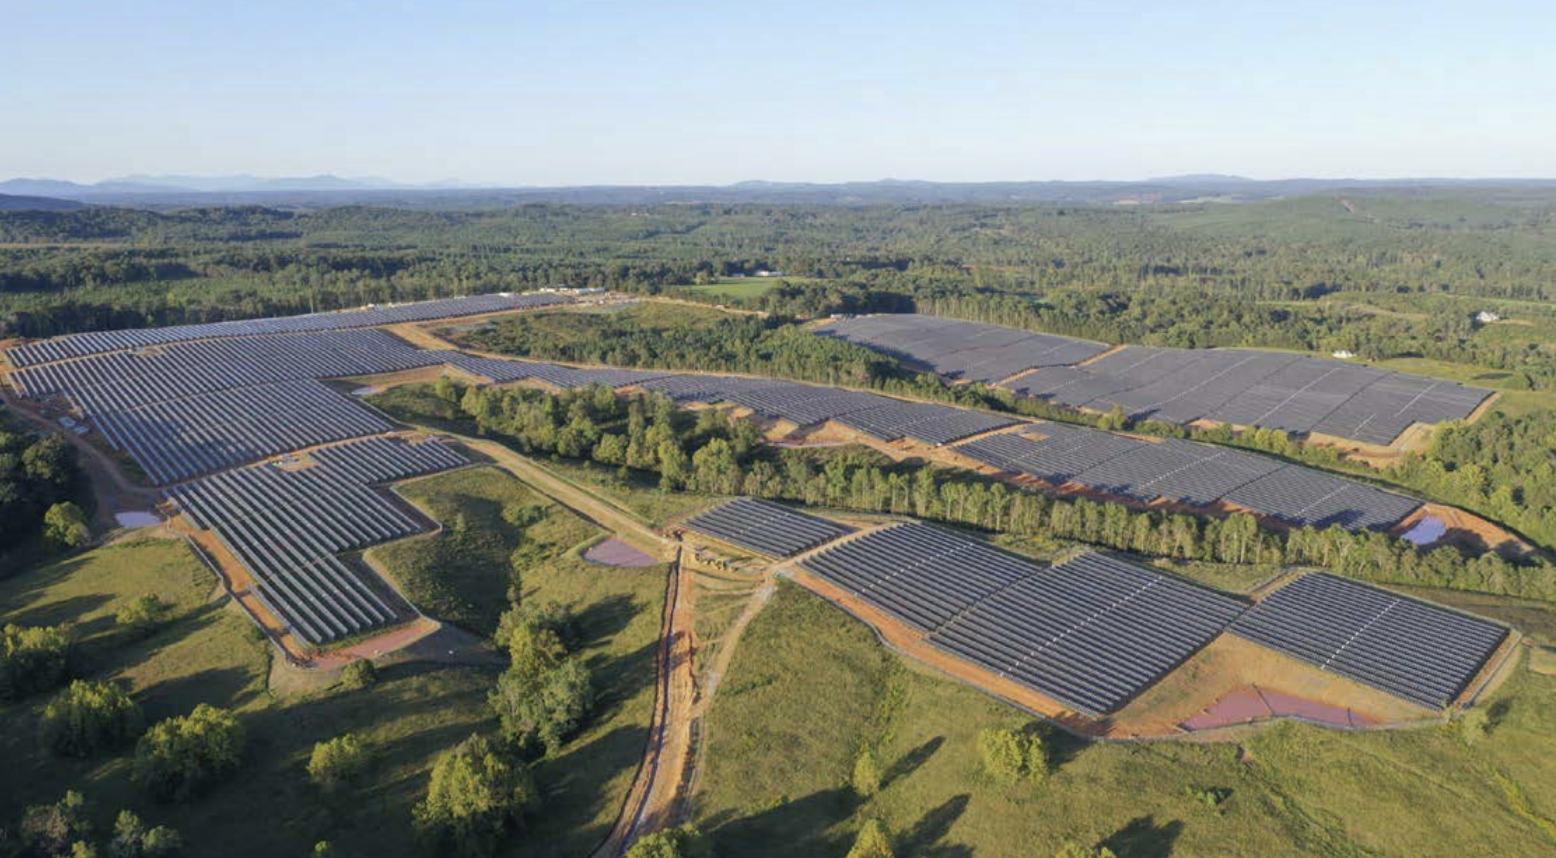 An overhead view of fields of solar panels located in the Altavista solar project in Virgina.